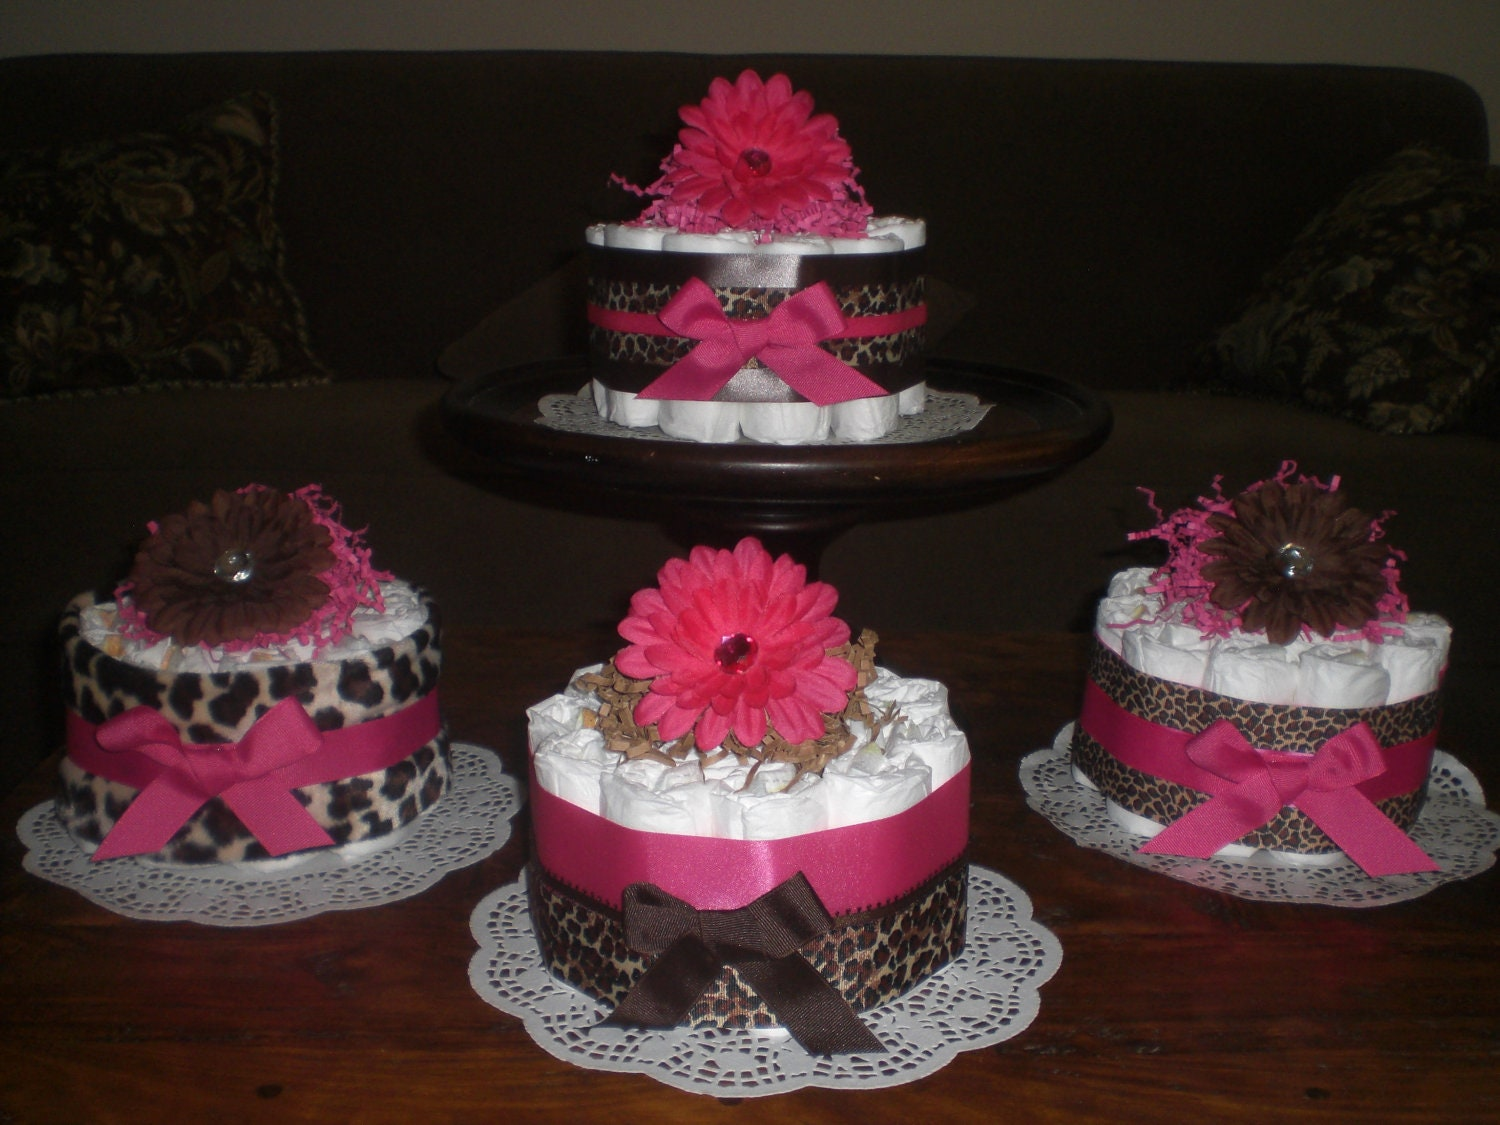 Diaper Cake Centerpiece For Baby Shower : Leopard or Cheetah Diaper Cake Baby Shower Centerpieces hot